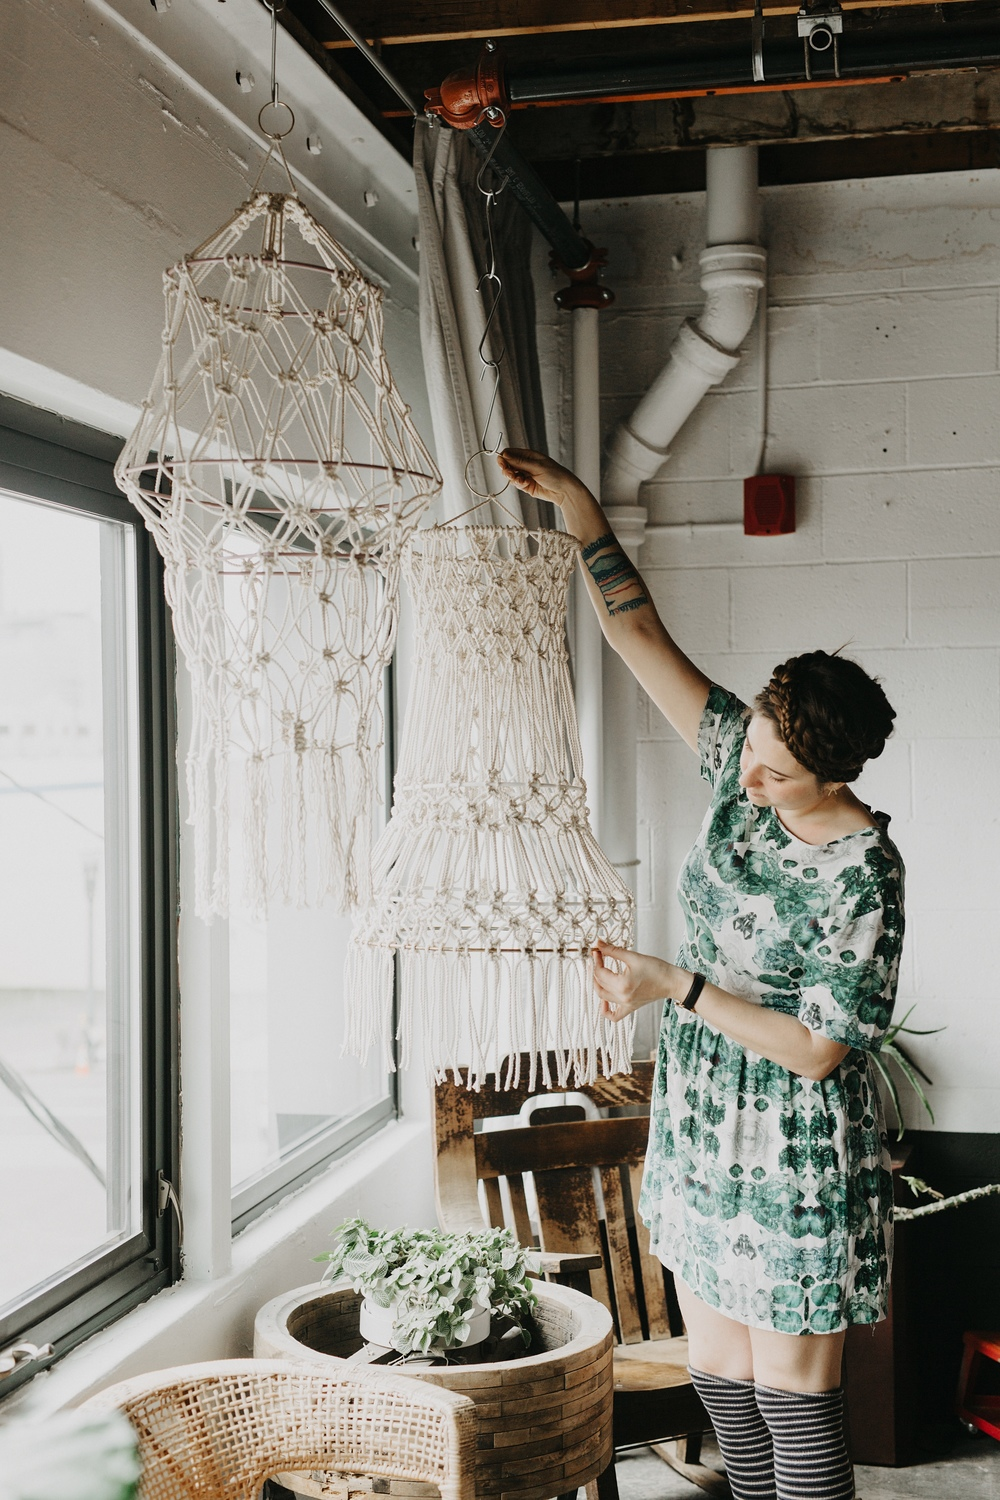 Macrame Hangings by Emily Katz